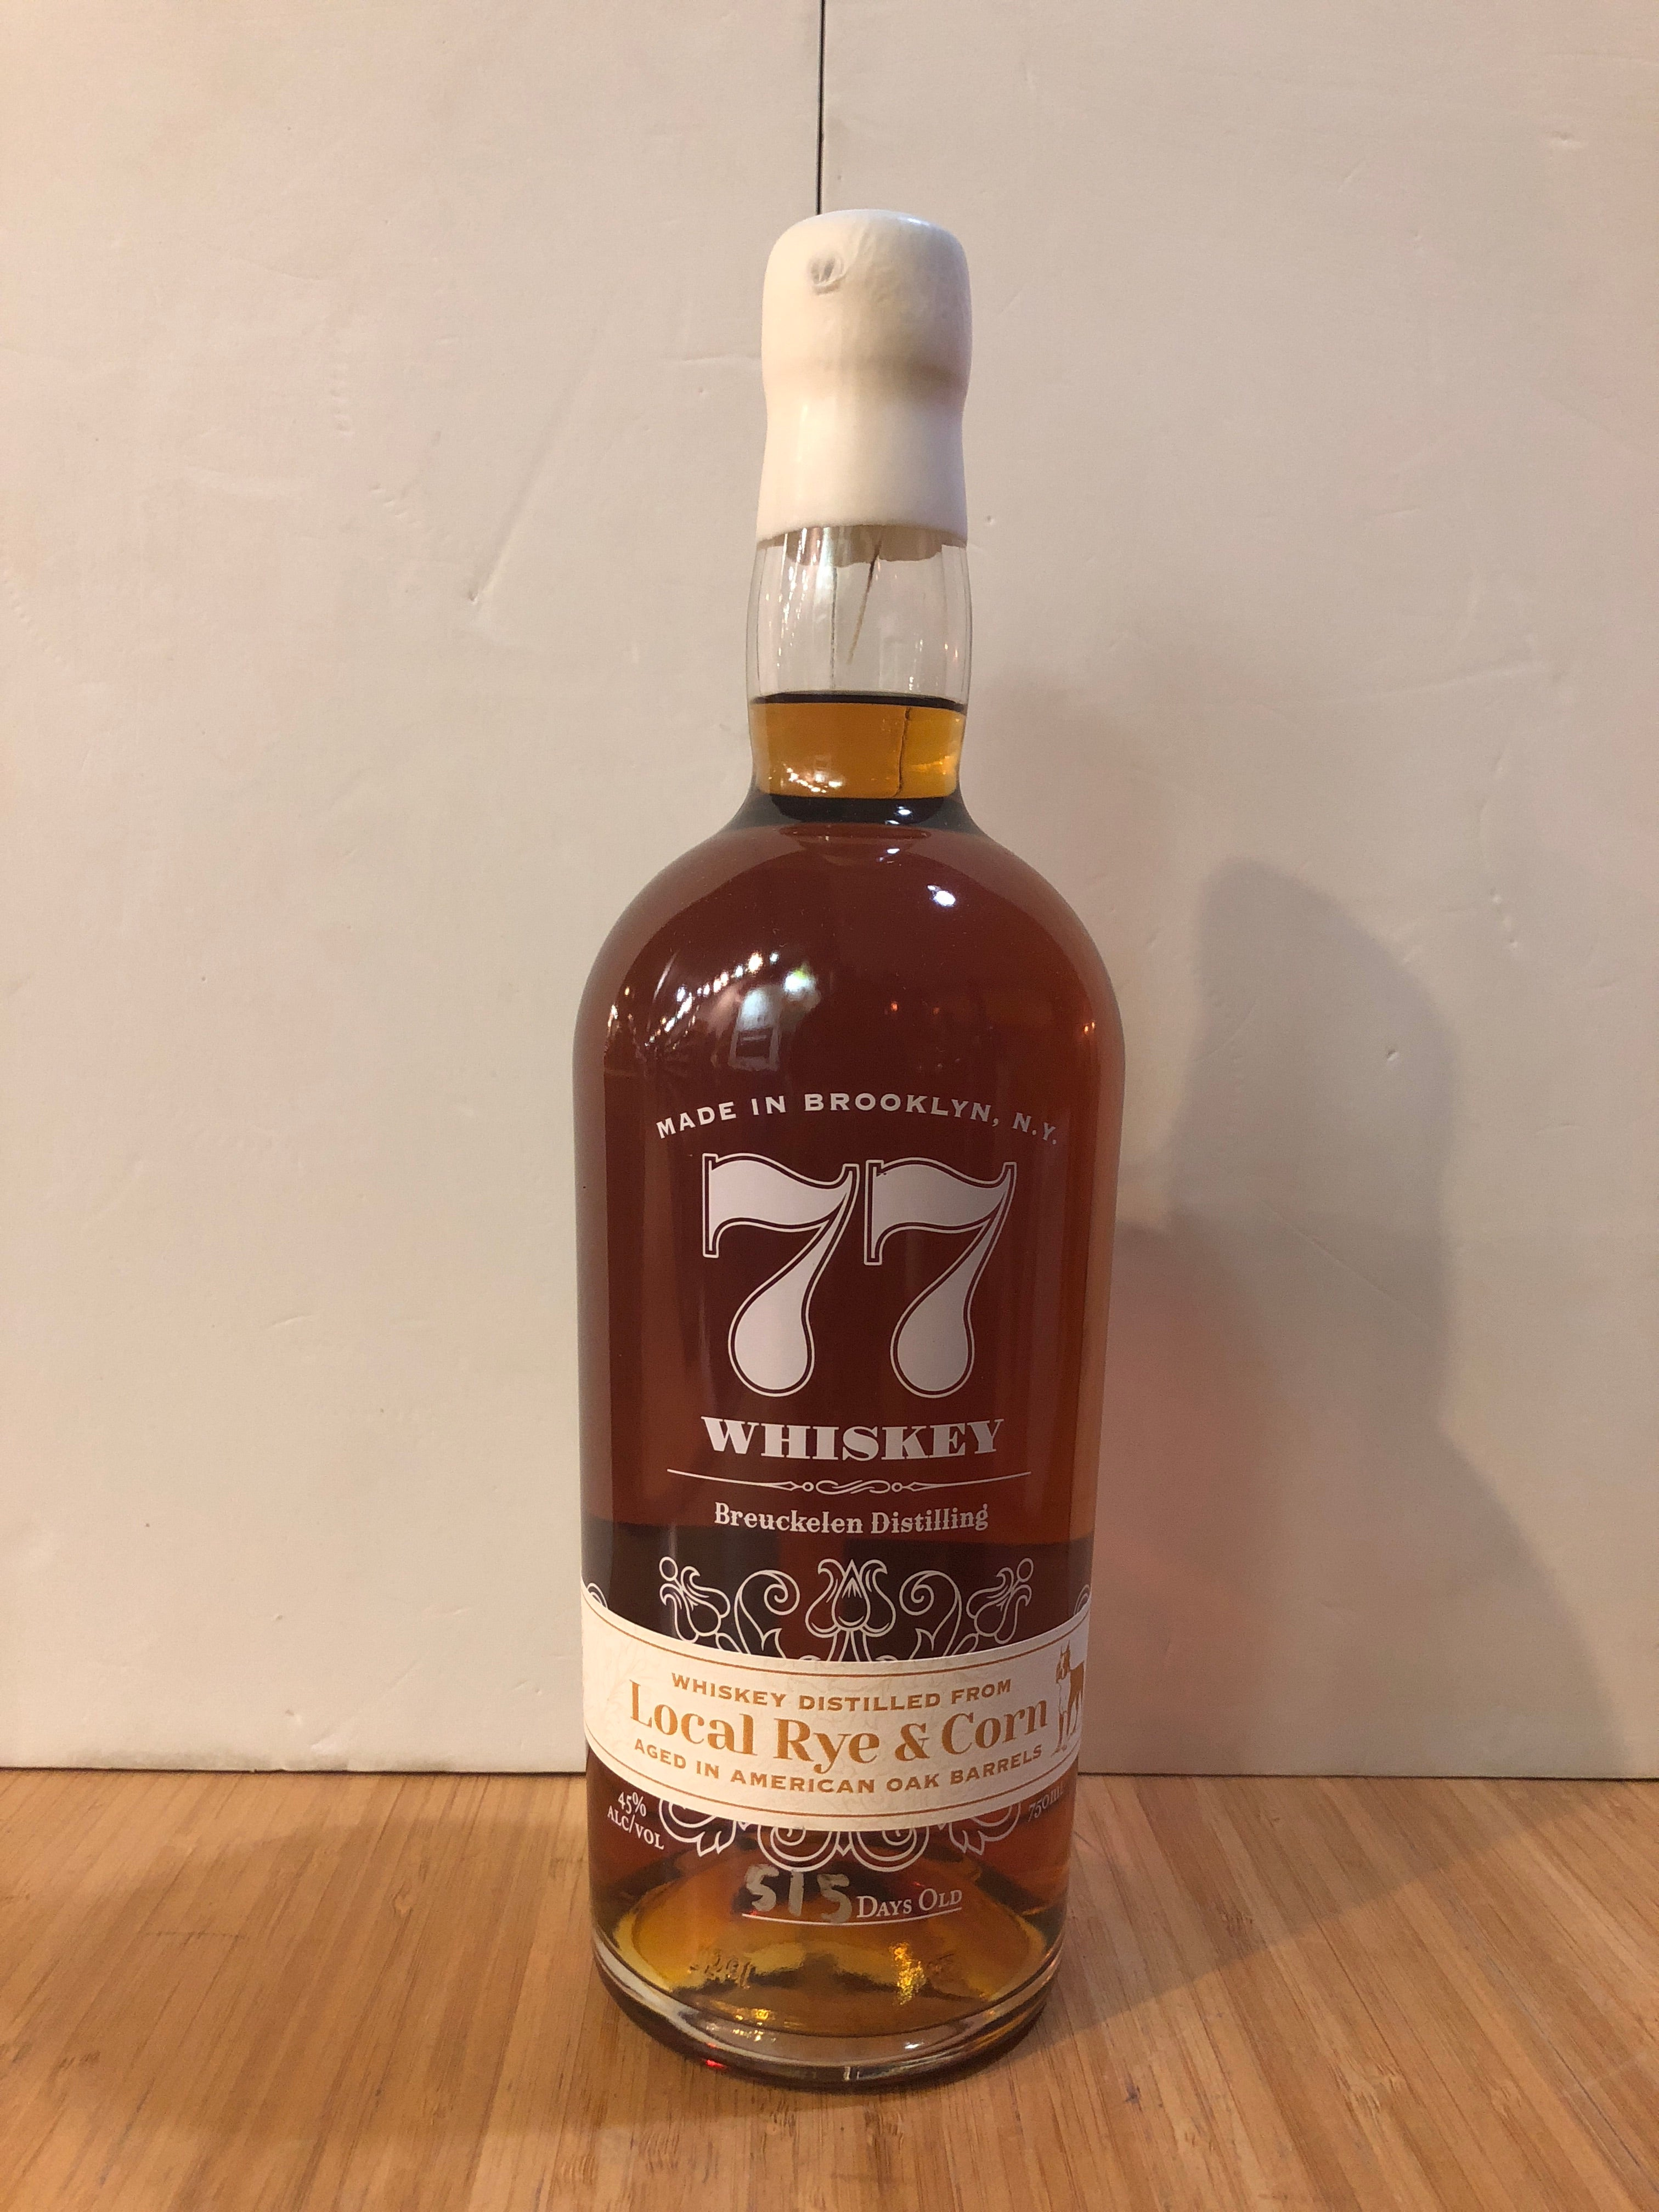 Breuckelen Distilling 77 Whiskey Local Rye & Corn